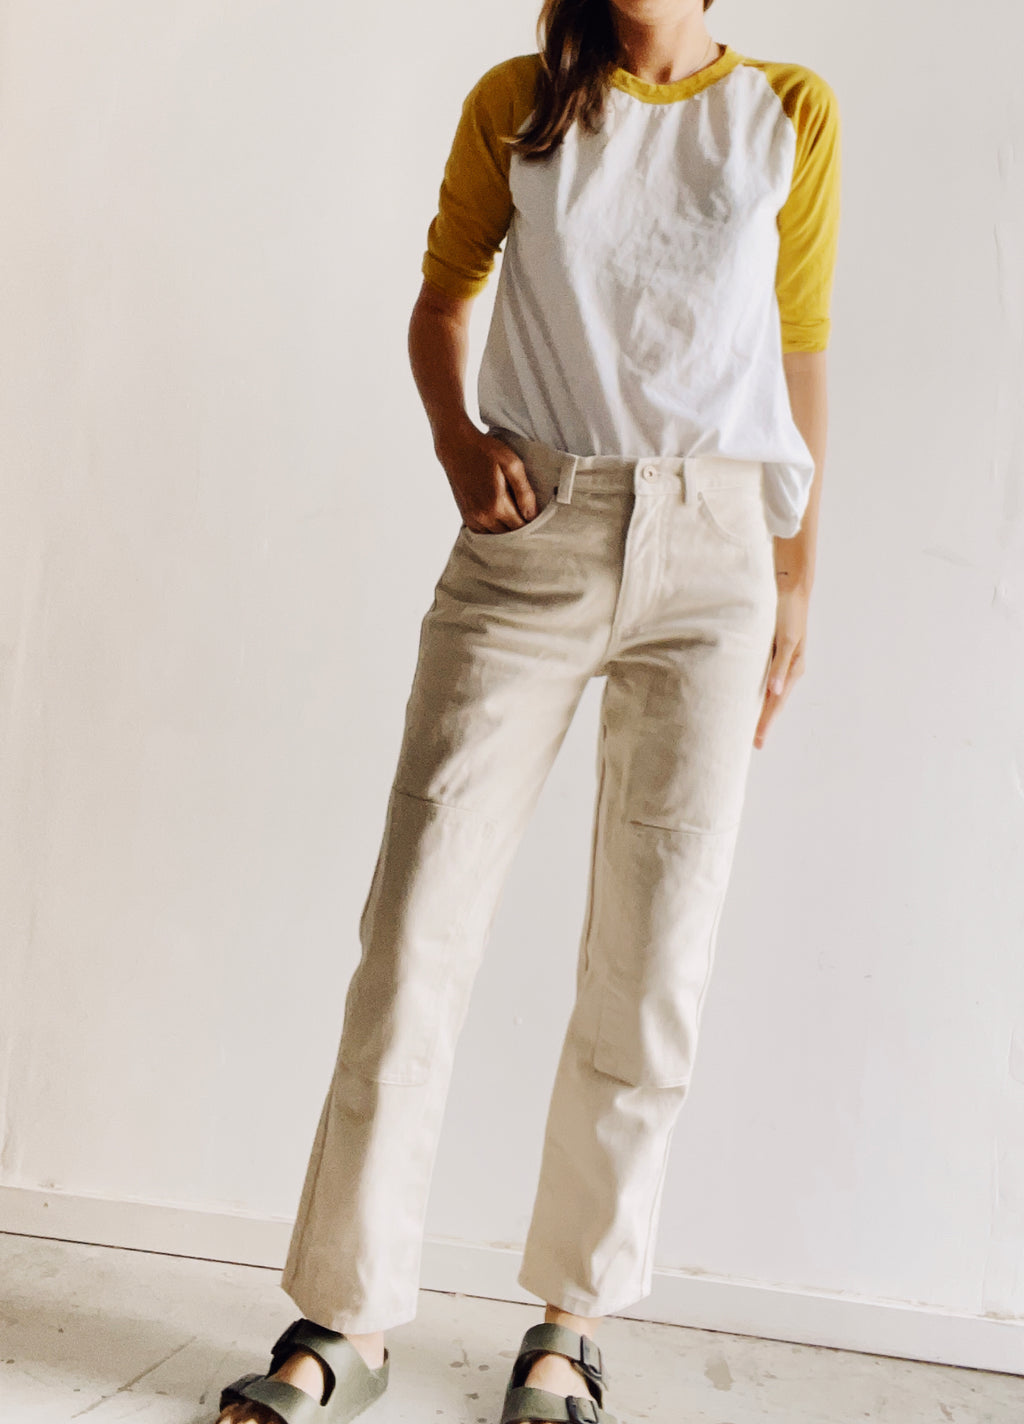 Women's Knee Patch Jeans Natural